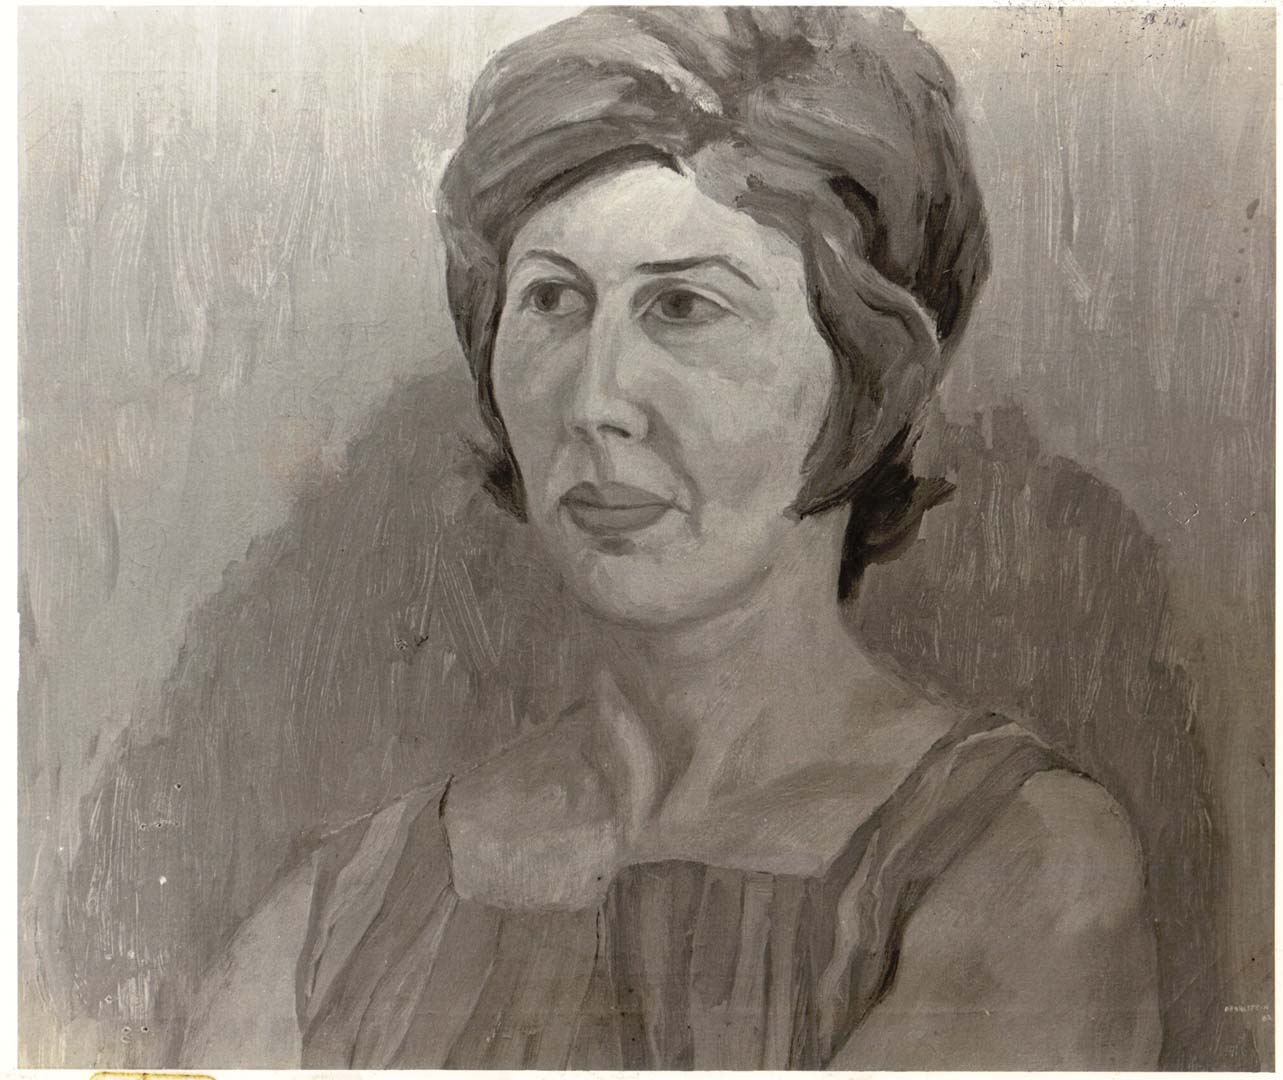 1962 Portrait of Millie Hyman Gitter Oil on canvas 21.75 x 25.75